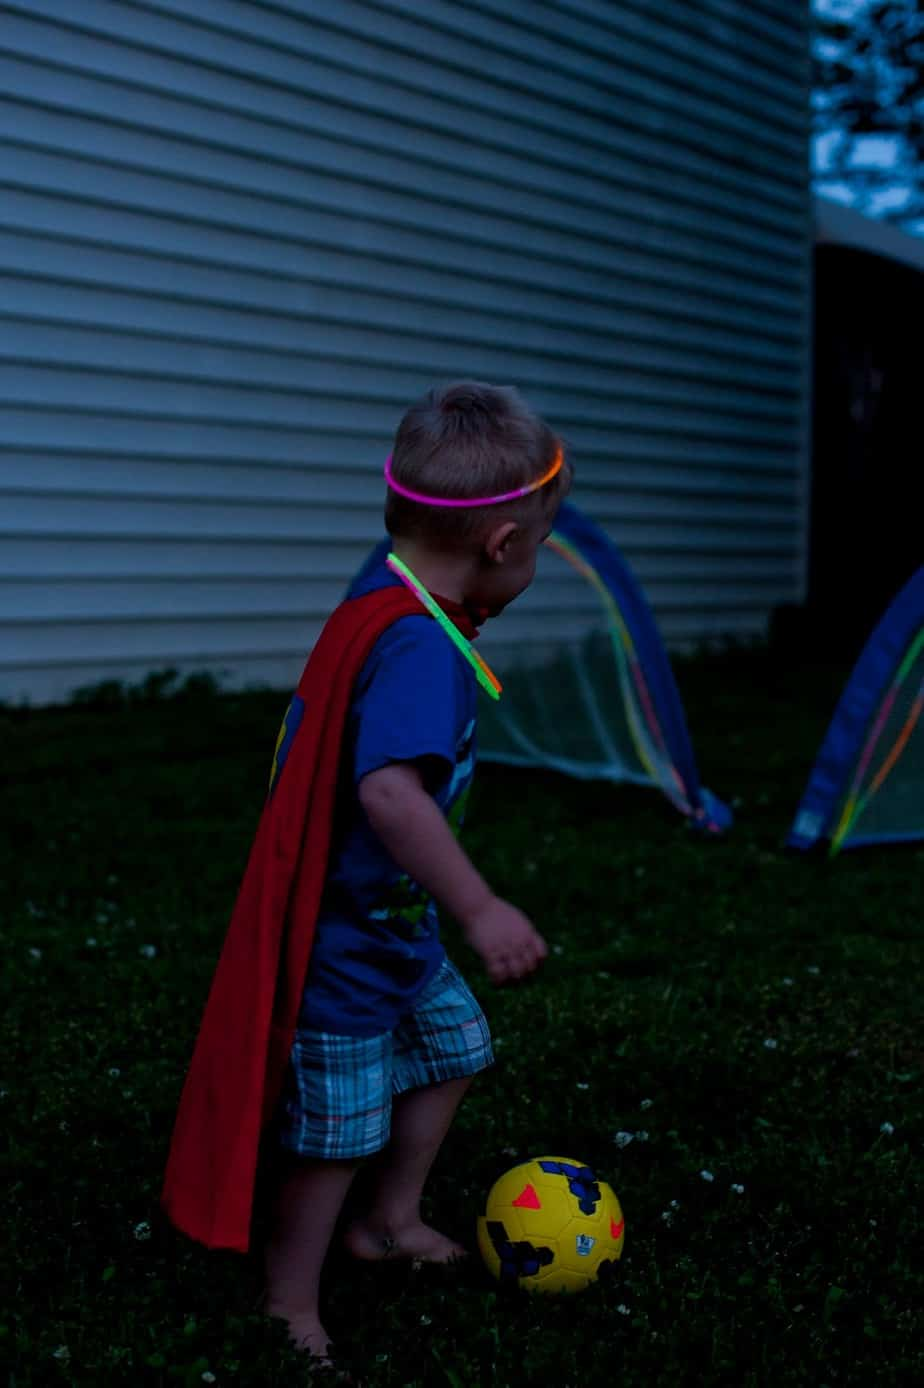 Super Hero Soccer - Fun with Glow Sticks - Soccer Goal